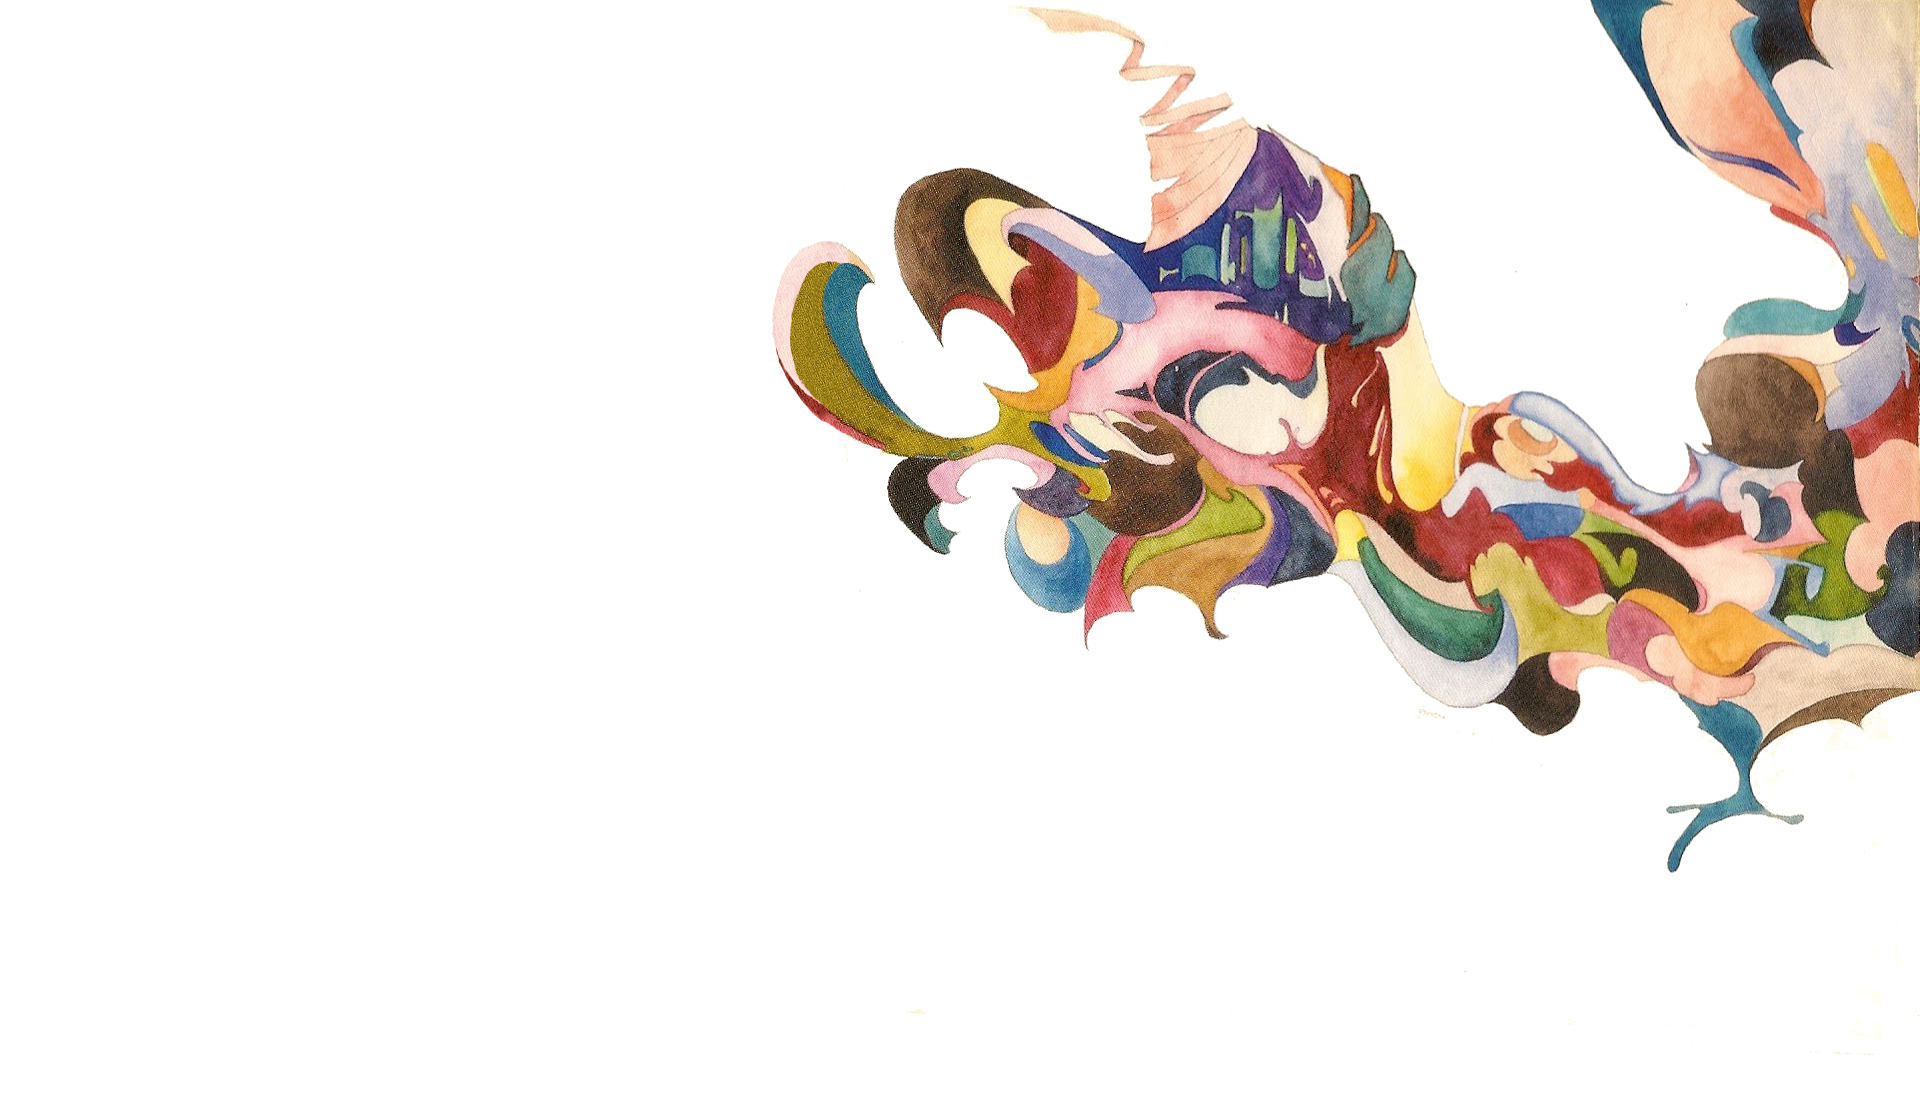 Space Wallpaper Full Hd Nujabes Abstract Wallpapers Hd Desktop And Mobile